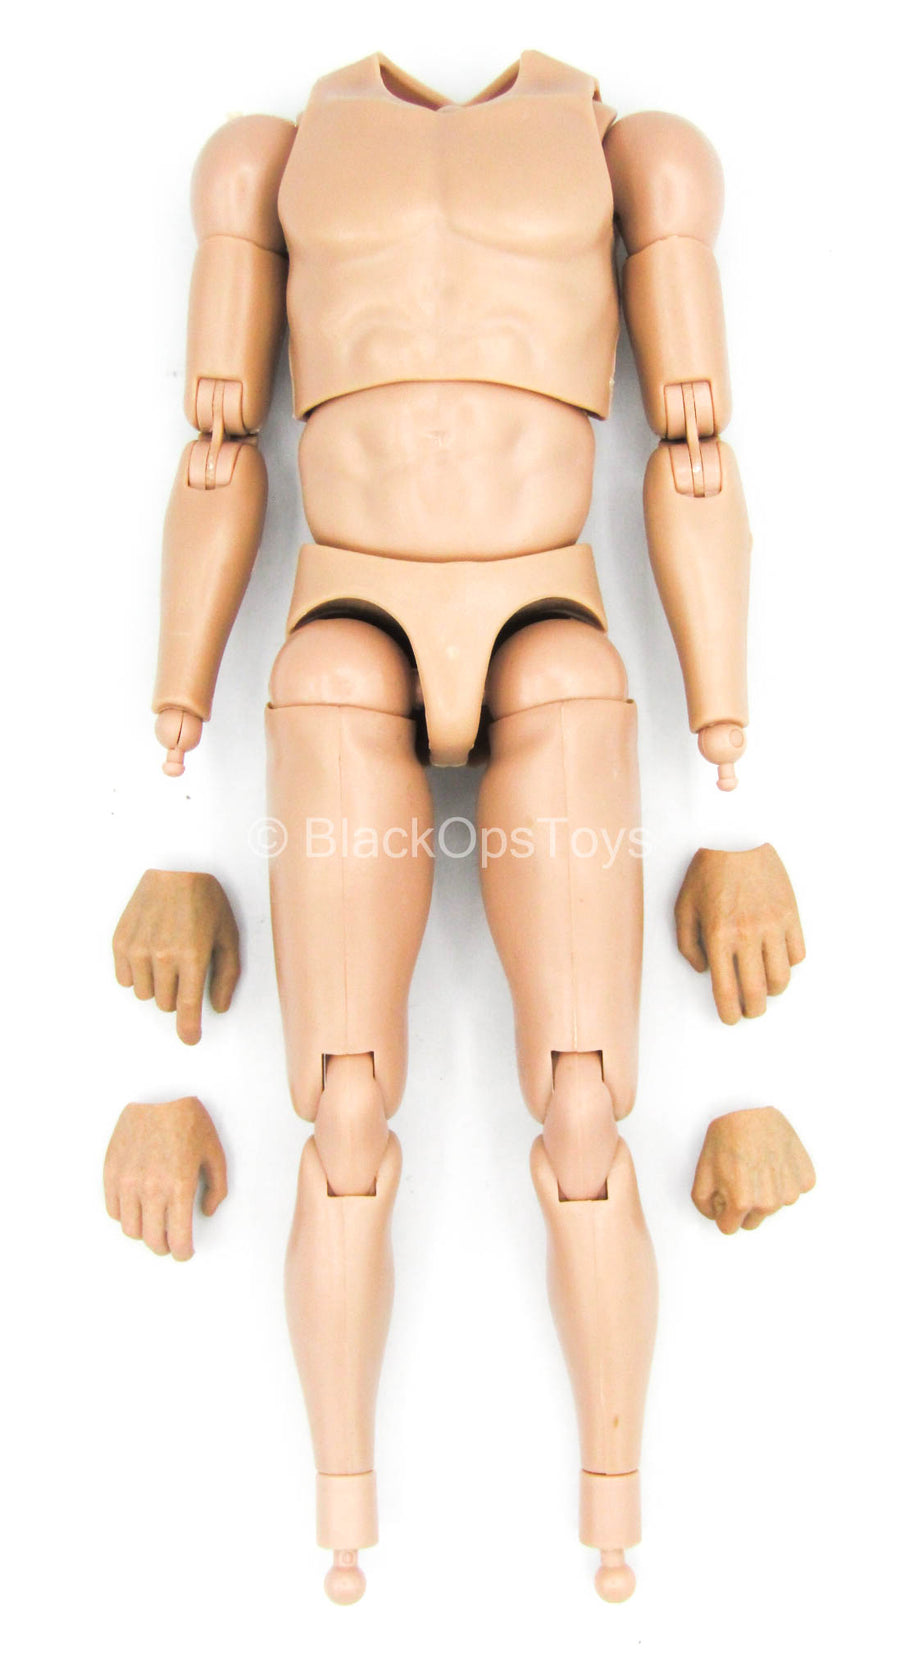 The Comedian - Male Base Body w/Hand Set